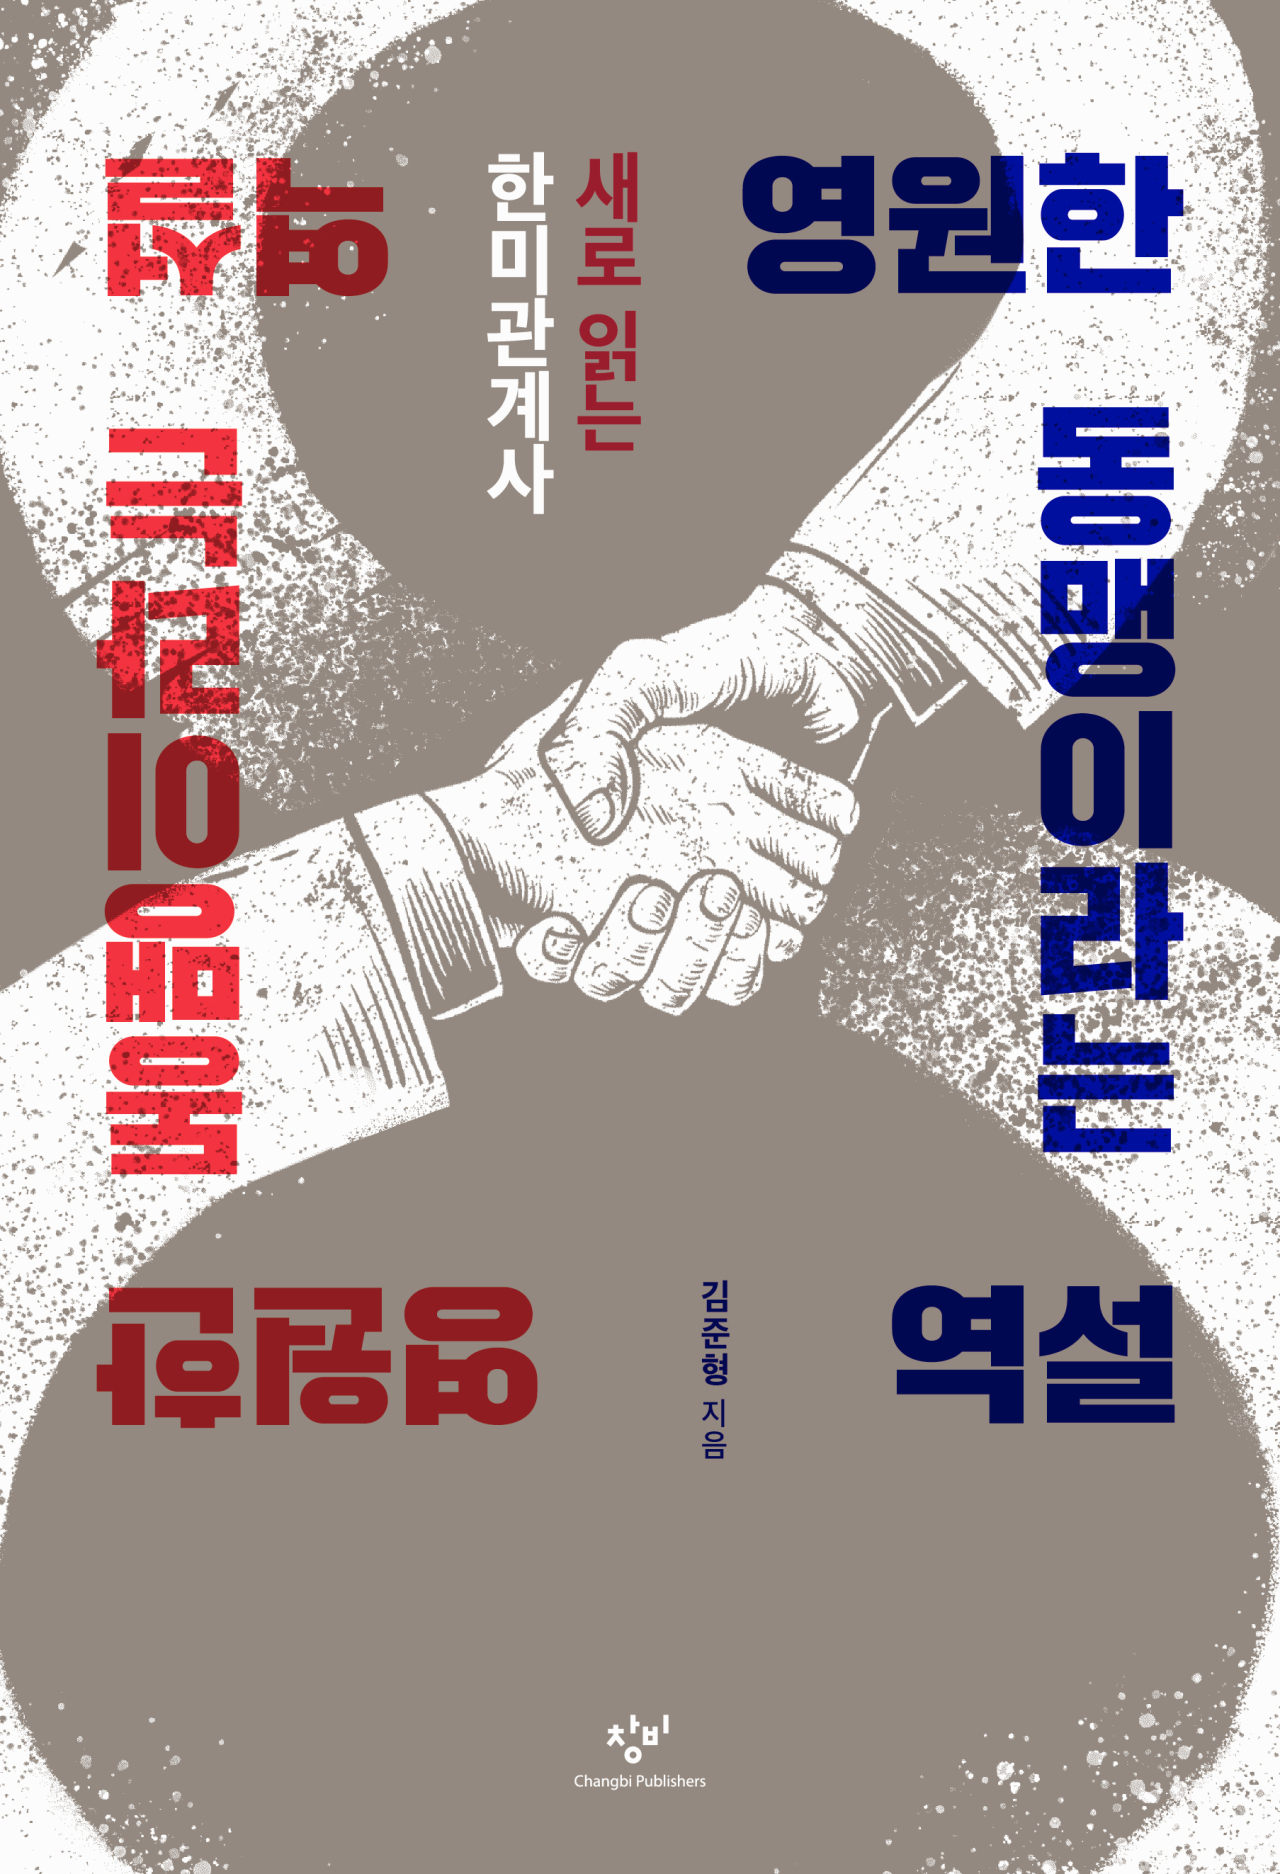 """""""The Paradox of the Eternal Alliance"""" by Kim Joon-hyung (Changbi Publishers)"""